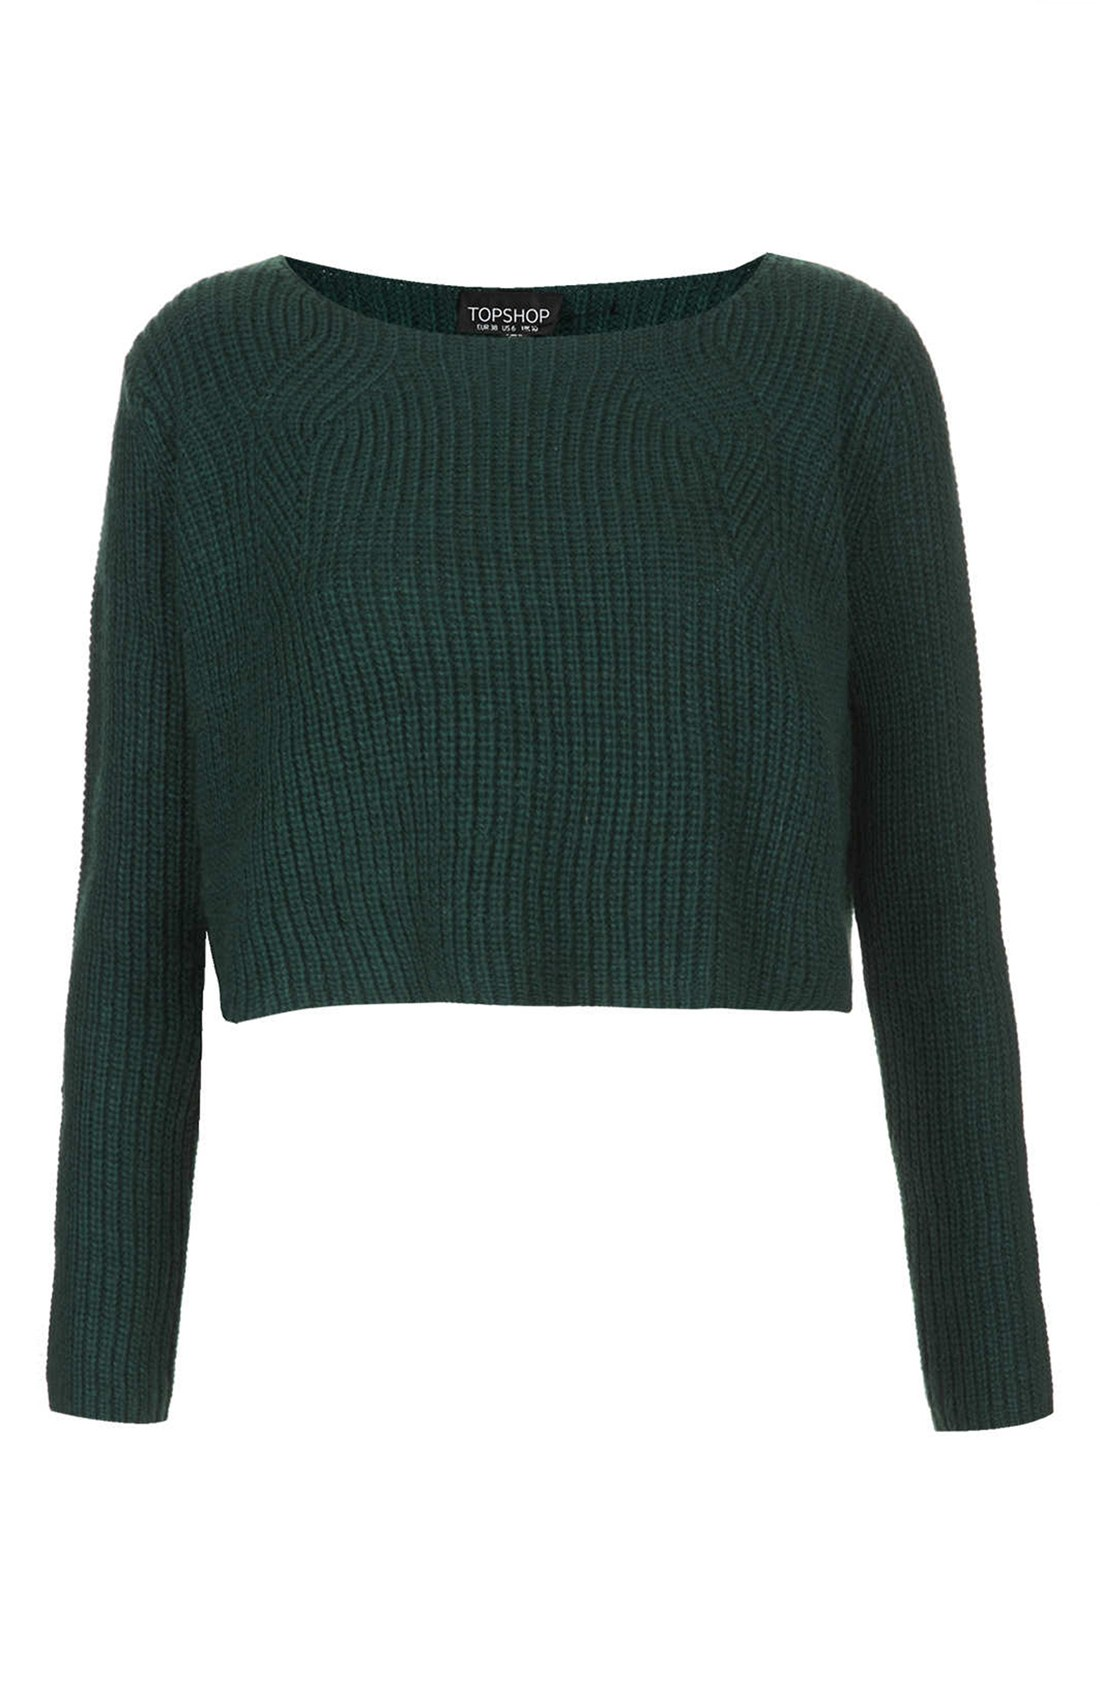 Topshop Ribbed Crop Sweater in Green | Lyst